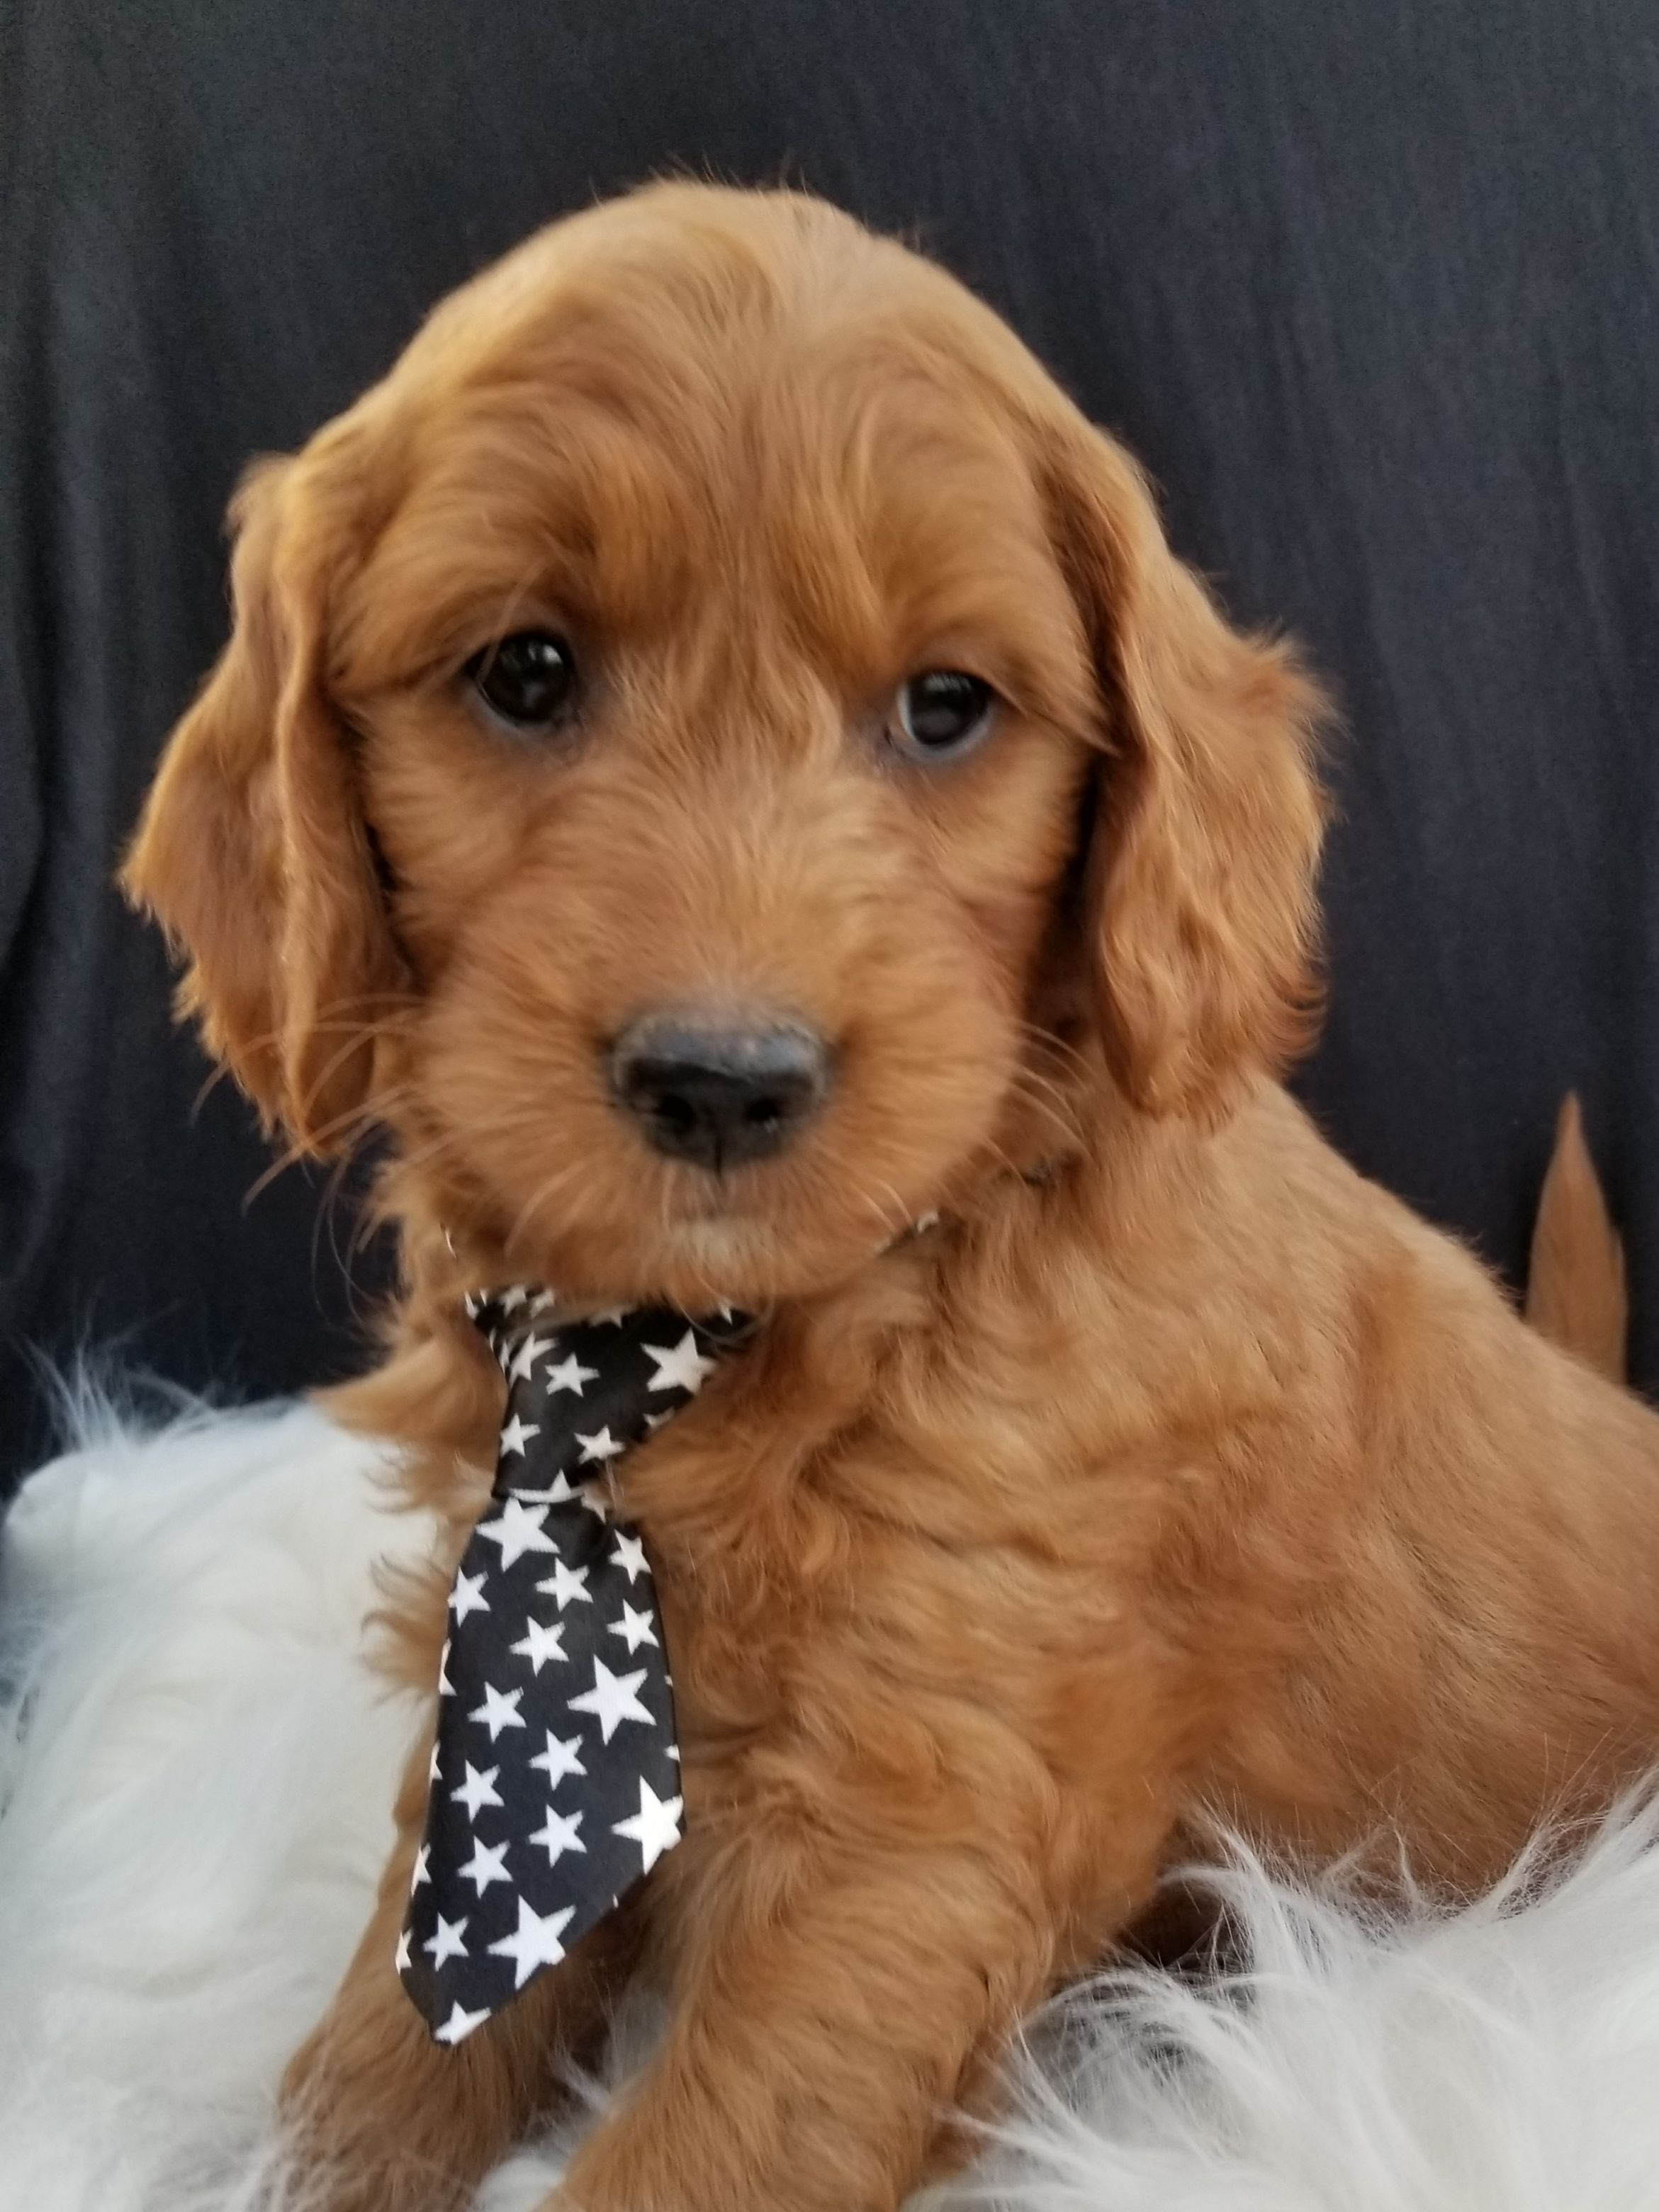 Puppies for Sale Mini goldendoodle puppies, Puppies for